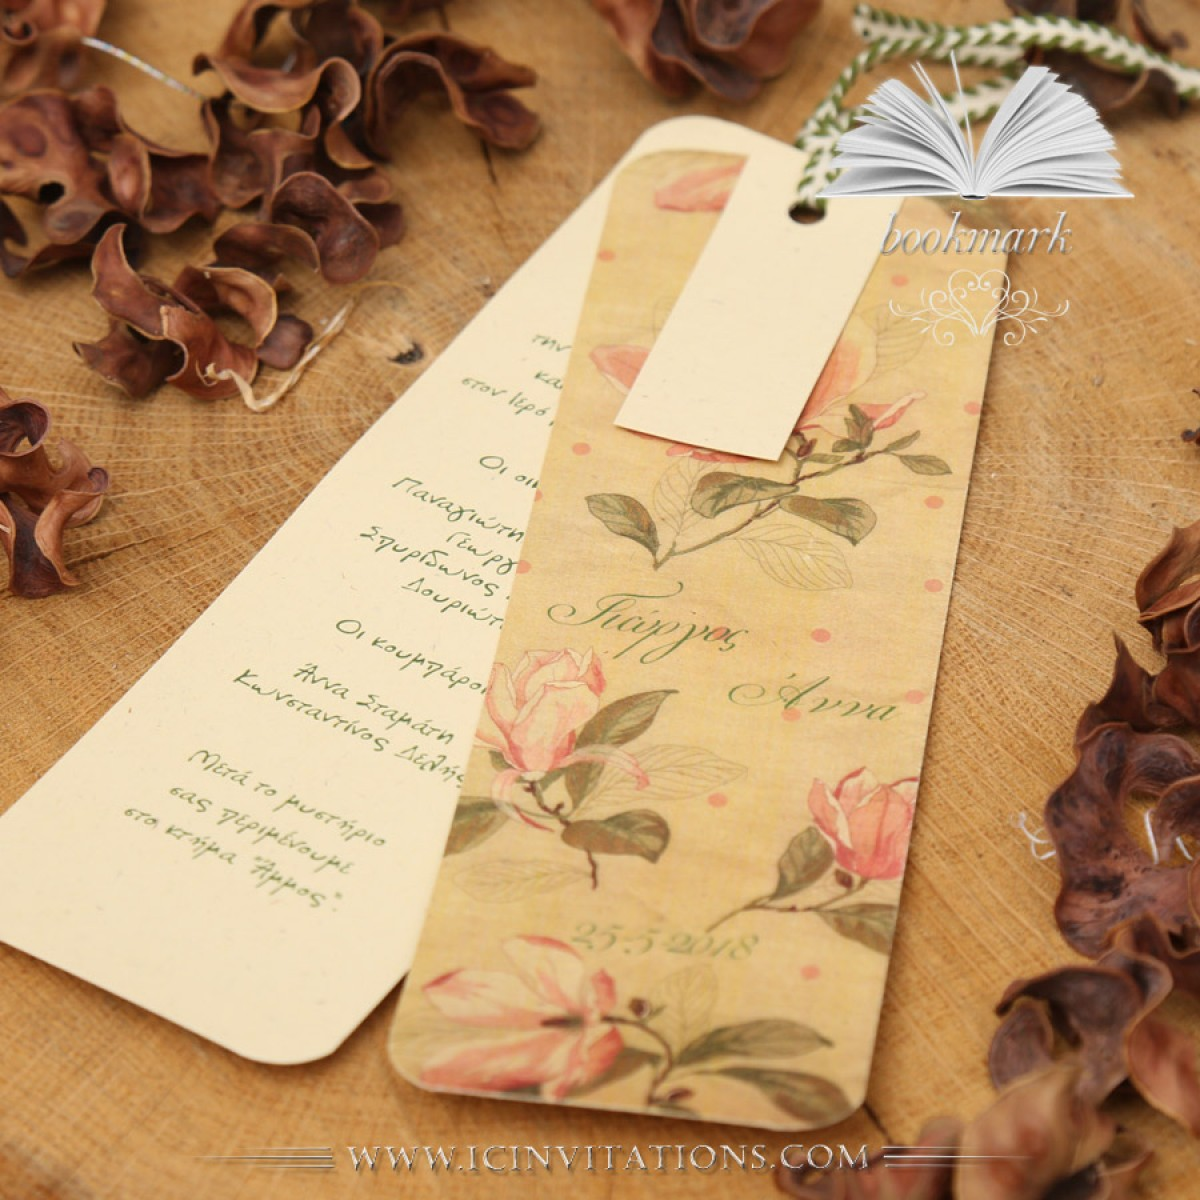 wedding invitation bookmark gx096 vintage 2018 ic invitations